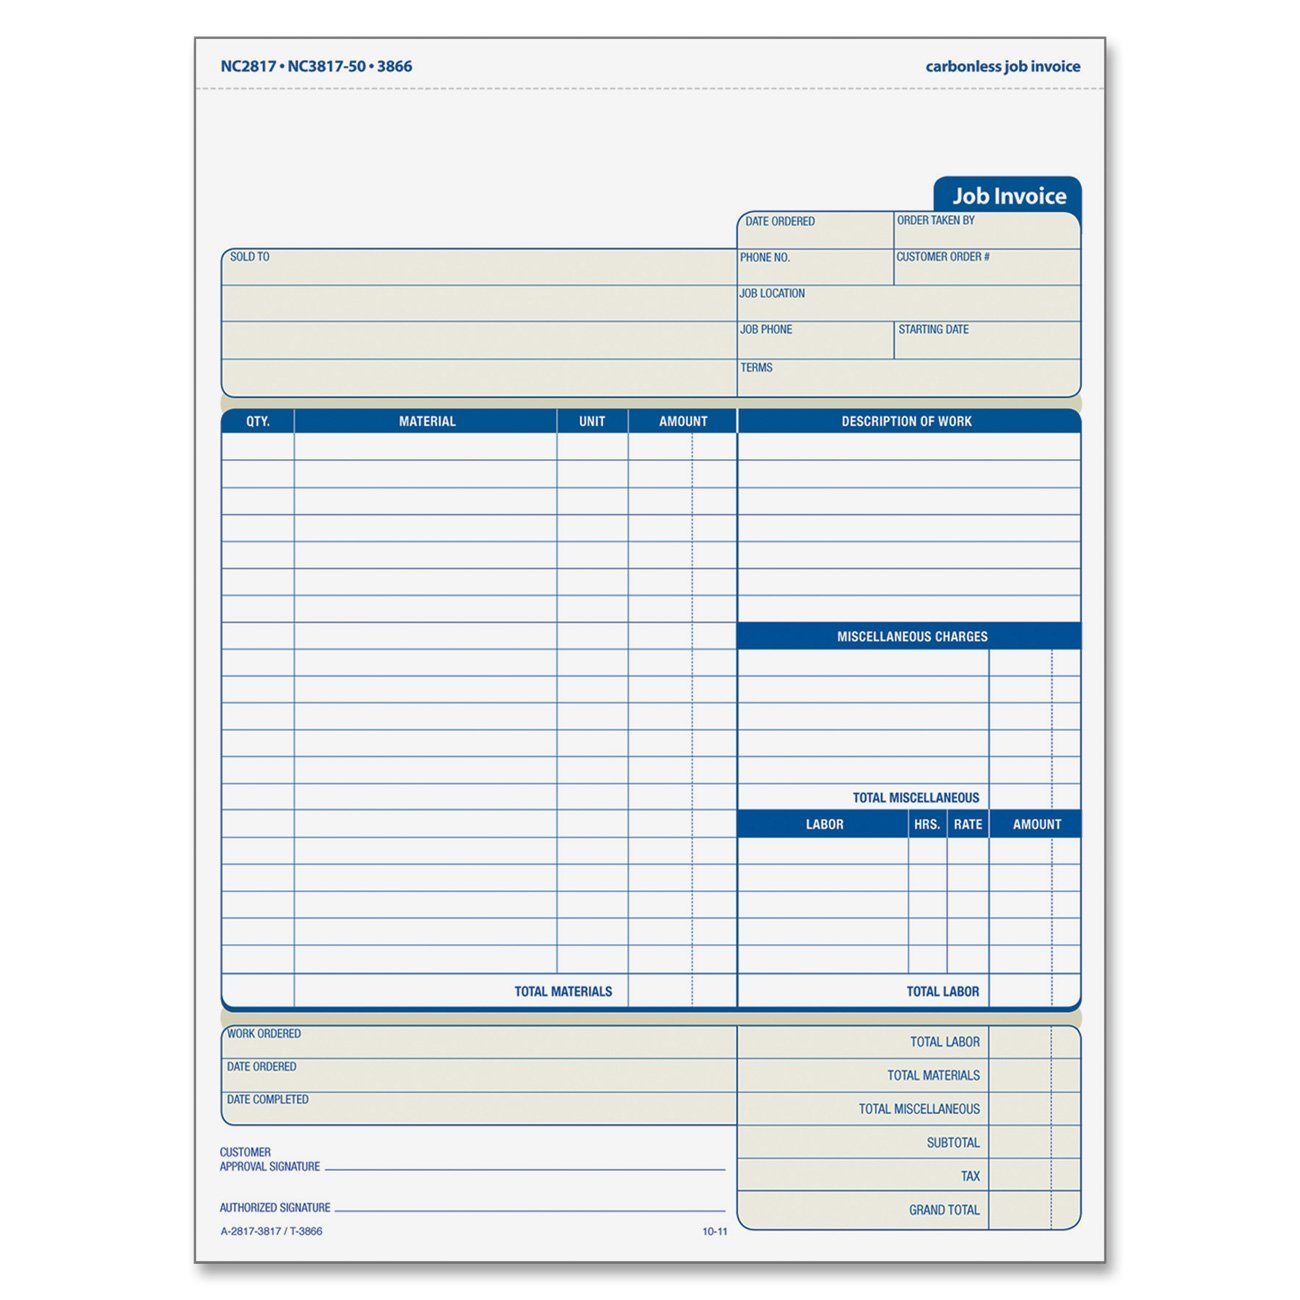 Job Invoice With Materials List 3 Part Carbonless 8 5 X 11 Inches 50 Sets Per Pack 3866 Snap Off Triplicate Job Invoice Form For On Location